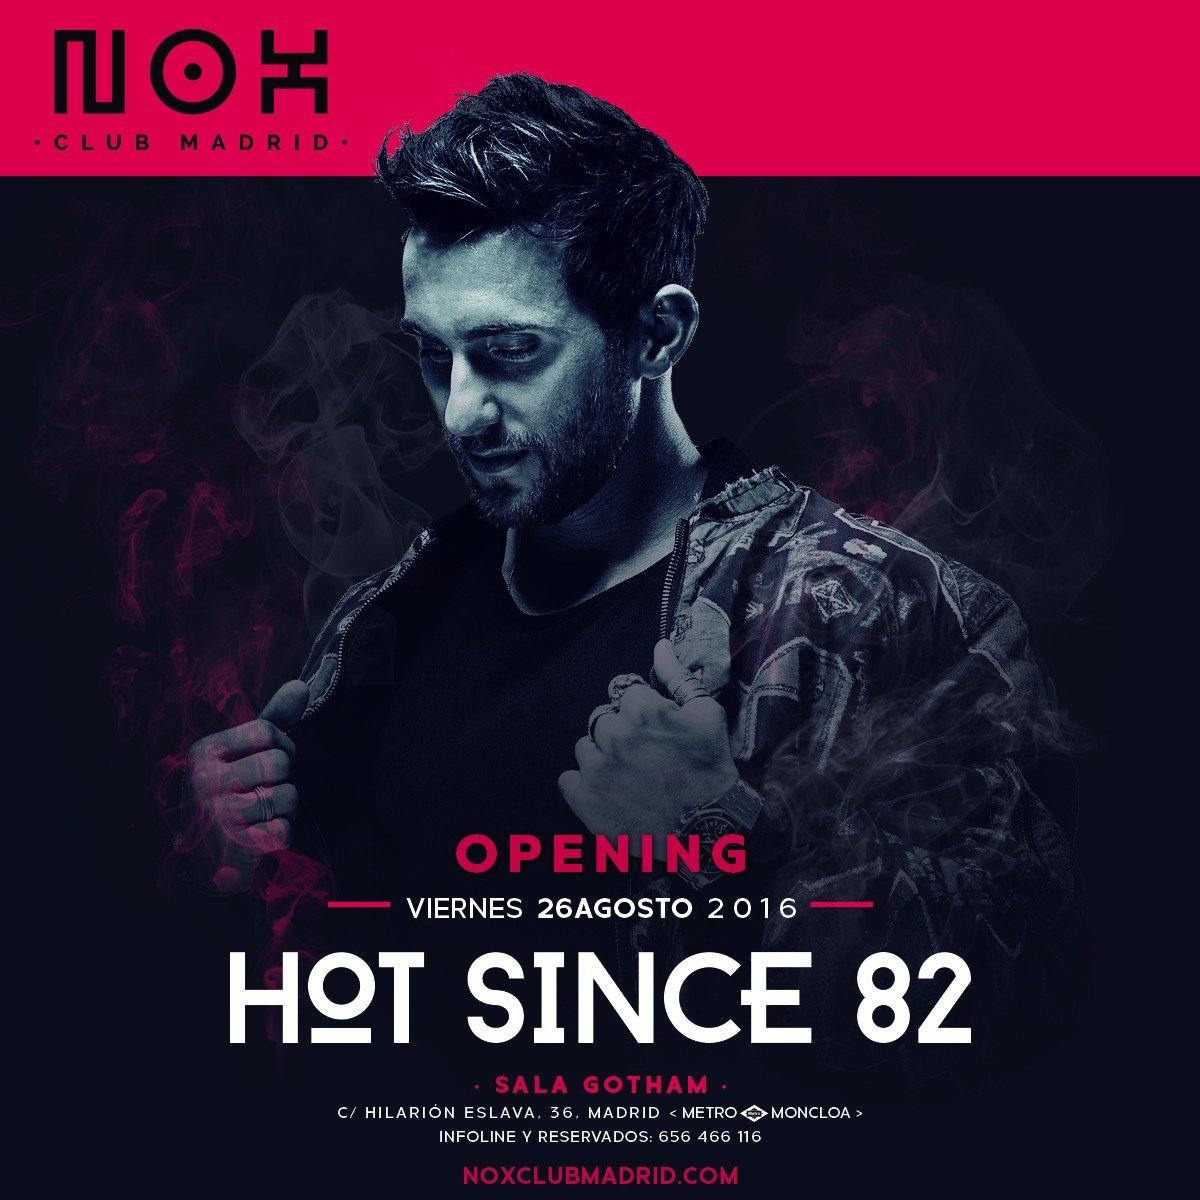 Nox Club Madrid estrena nueva temporada con Hot Since 82